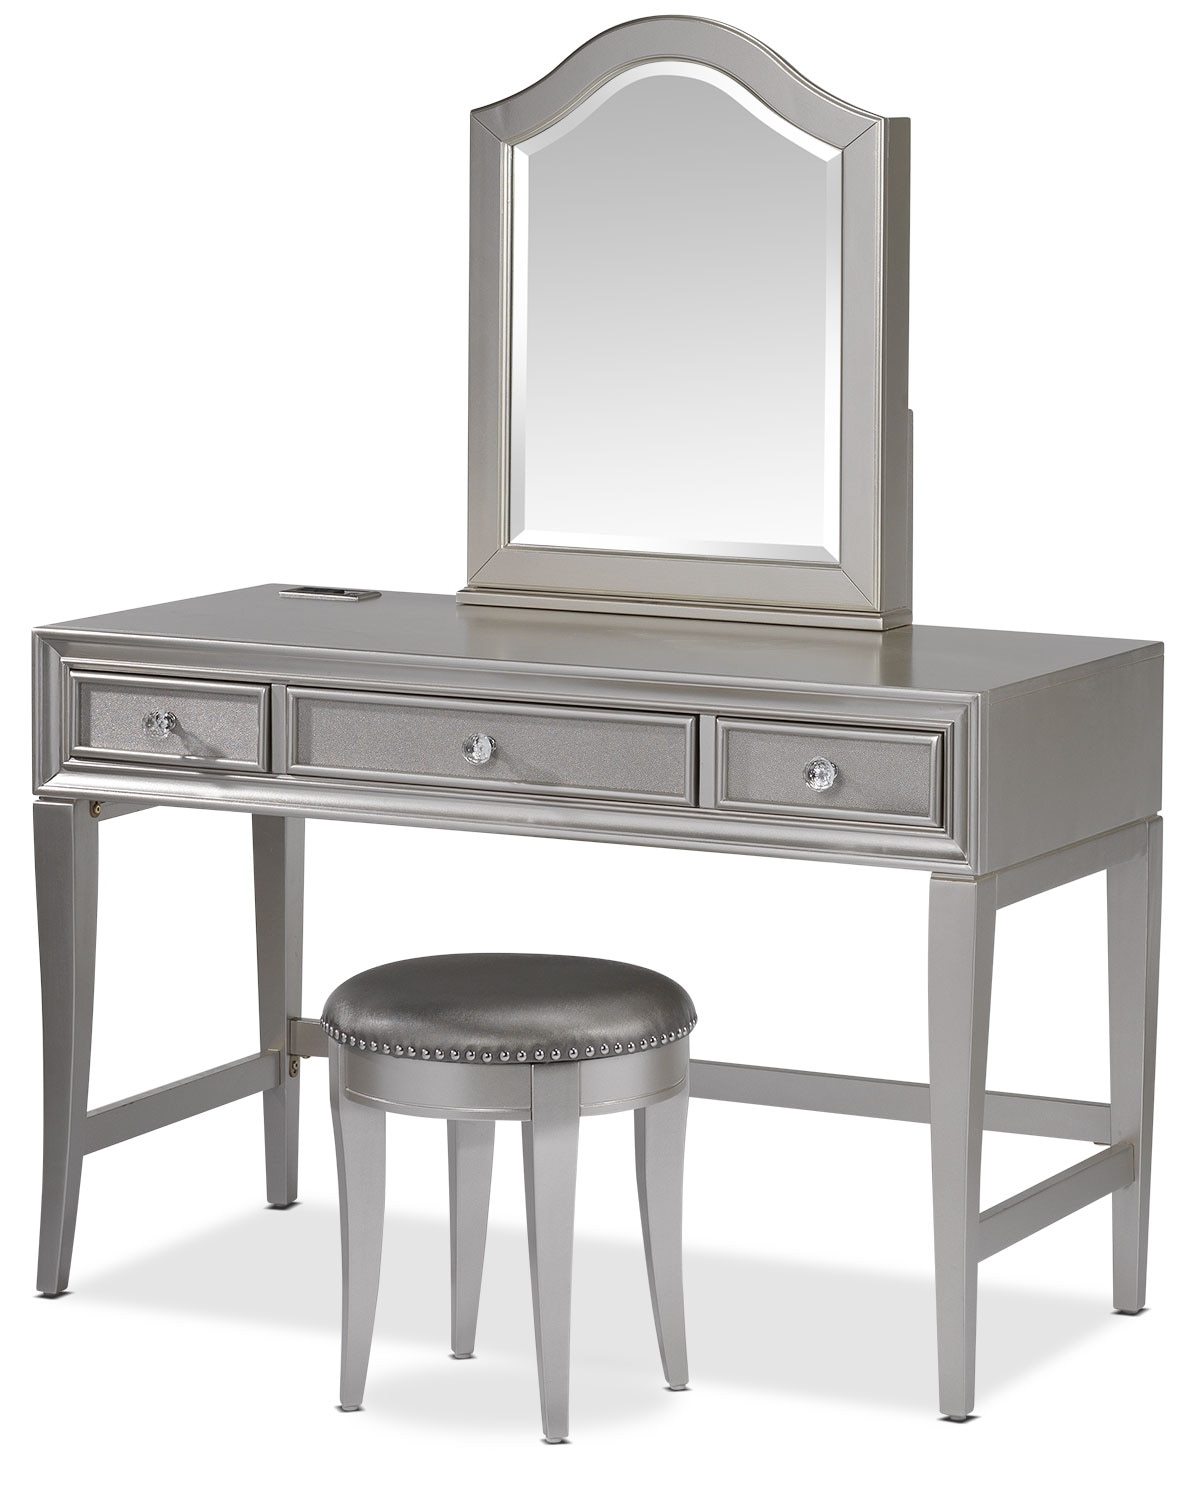 Kids Furniture - Lil Diva Vanity and Mirror w/ Stool